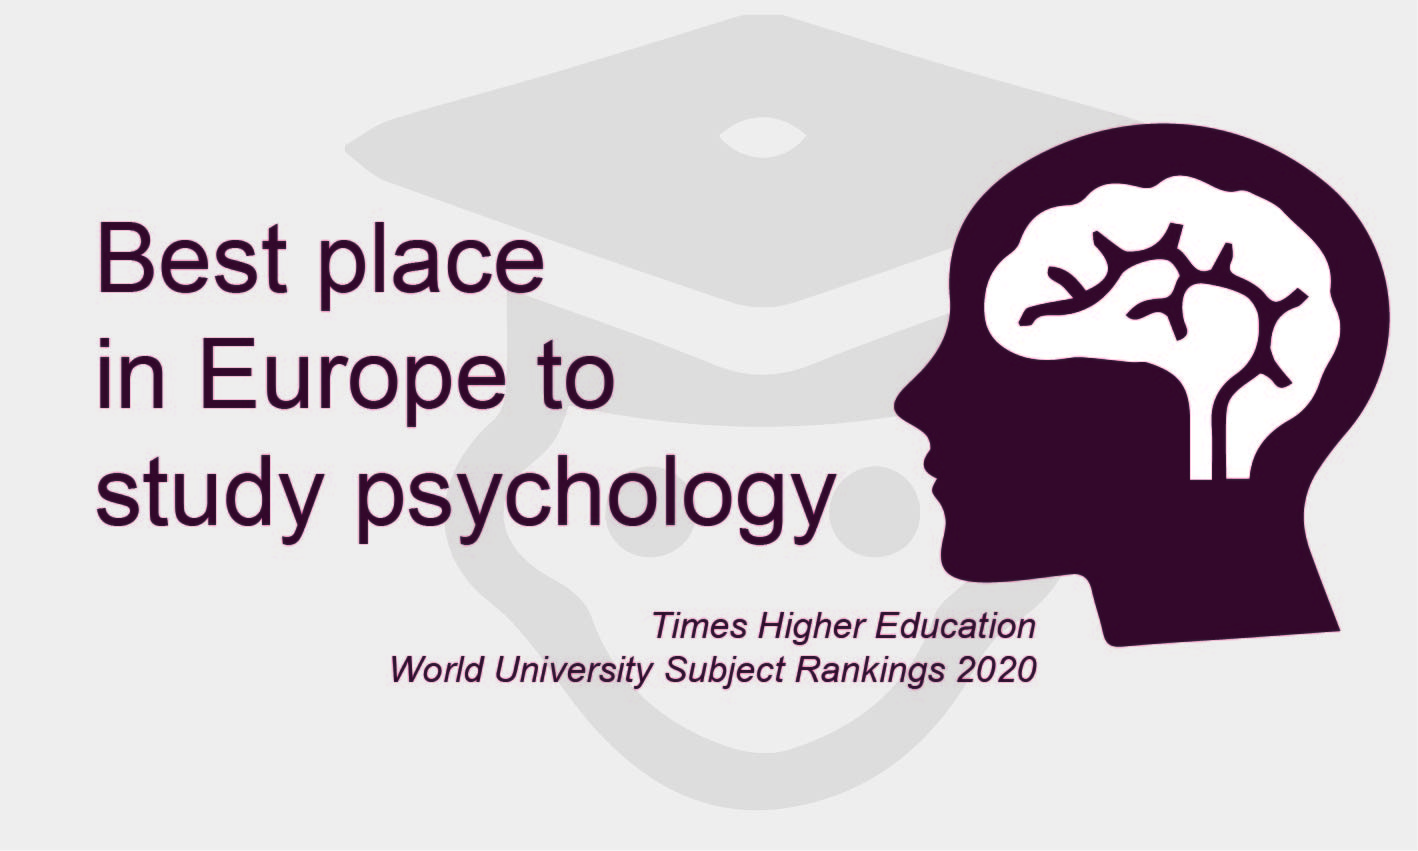 Best place in Europe to study psychology